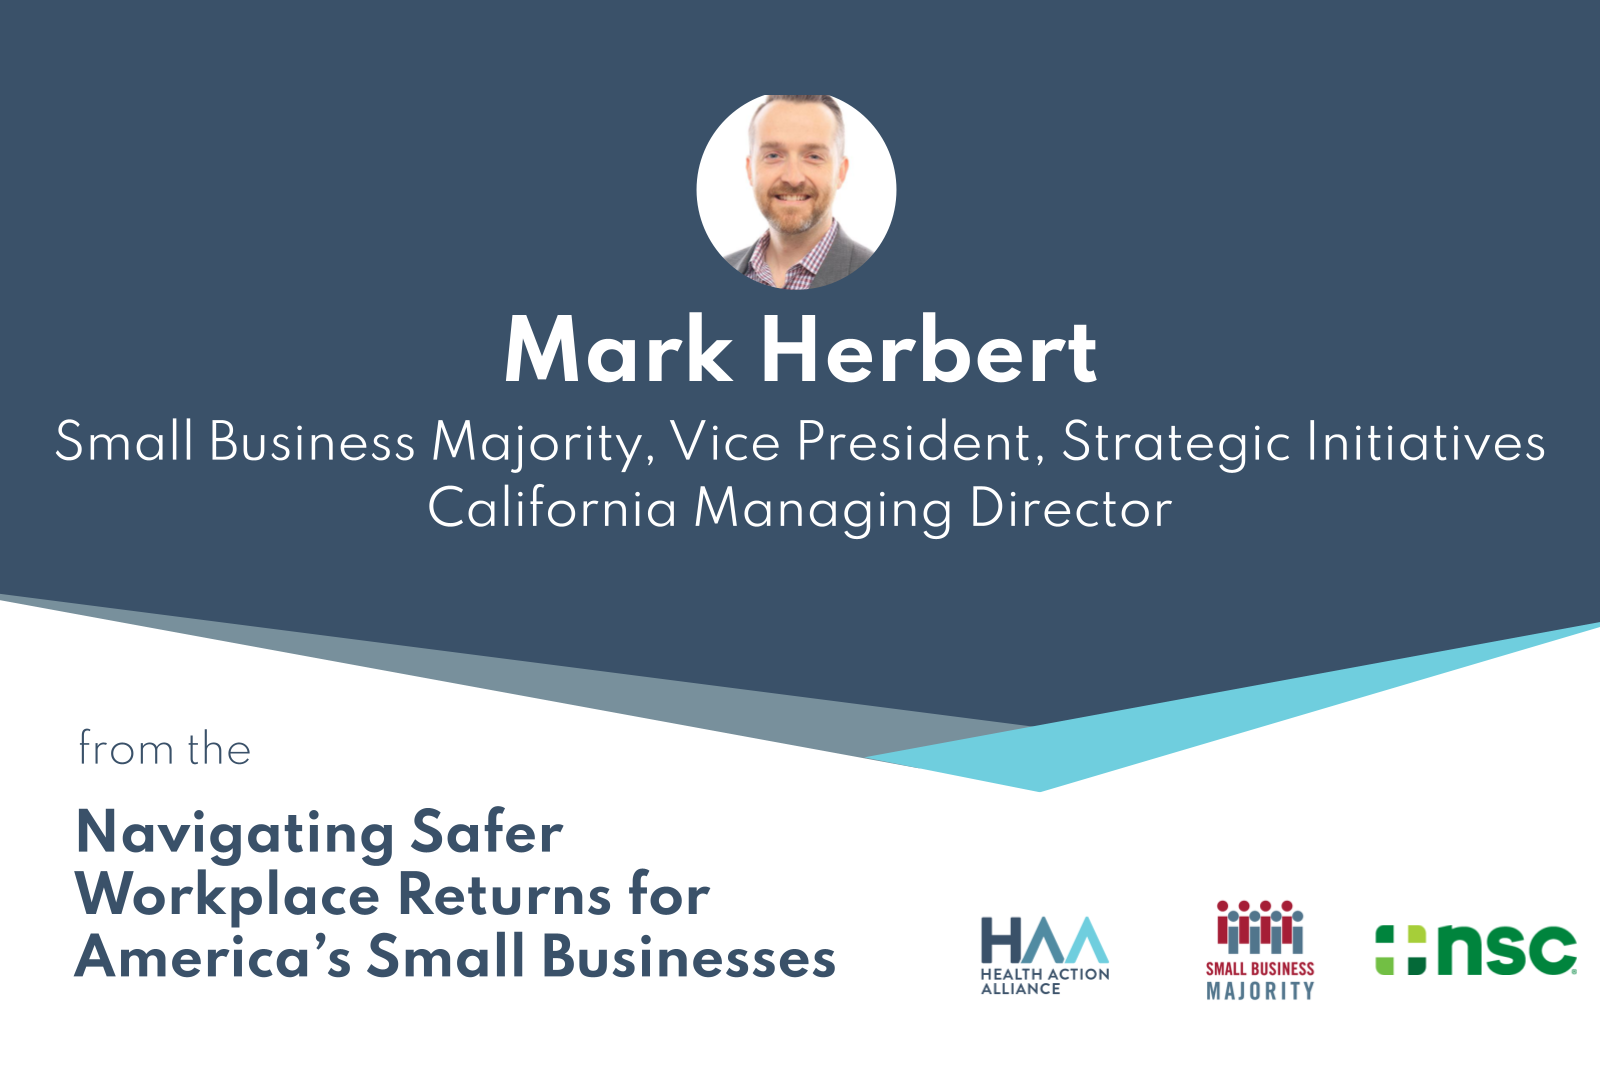 Navigating Safer Workplace Returns for America's Small Businesses - Mark Herbert, Small Business Majority